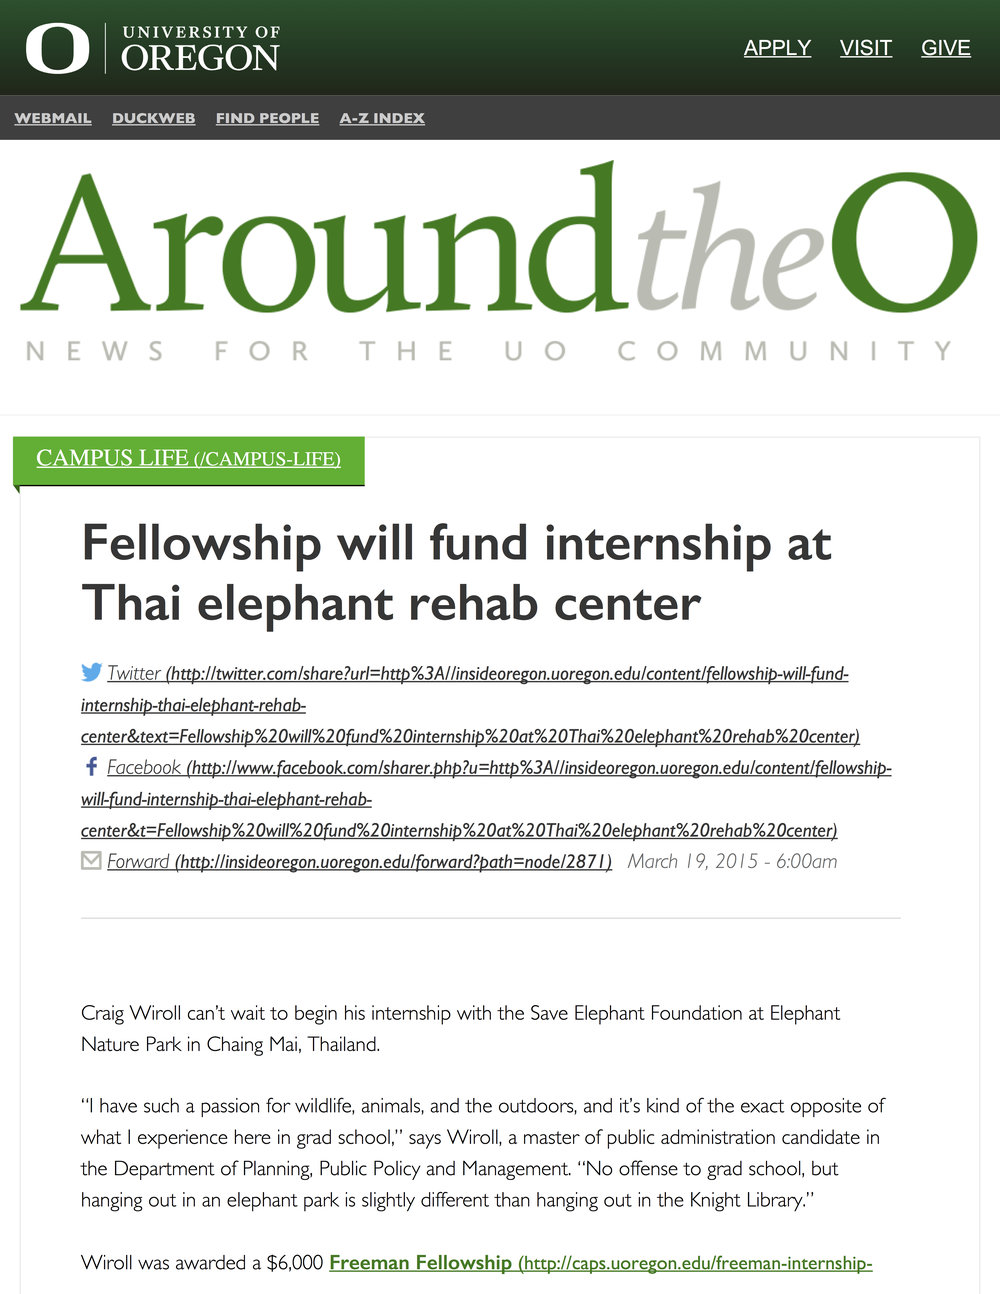 fellowship-will-fund-internship-at-thai-elephant-rehab-center-_-around-the-o.jpg